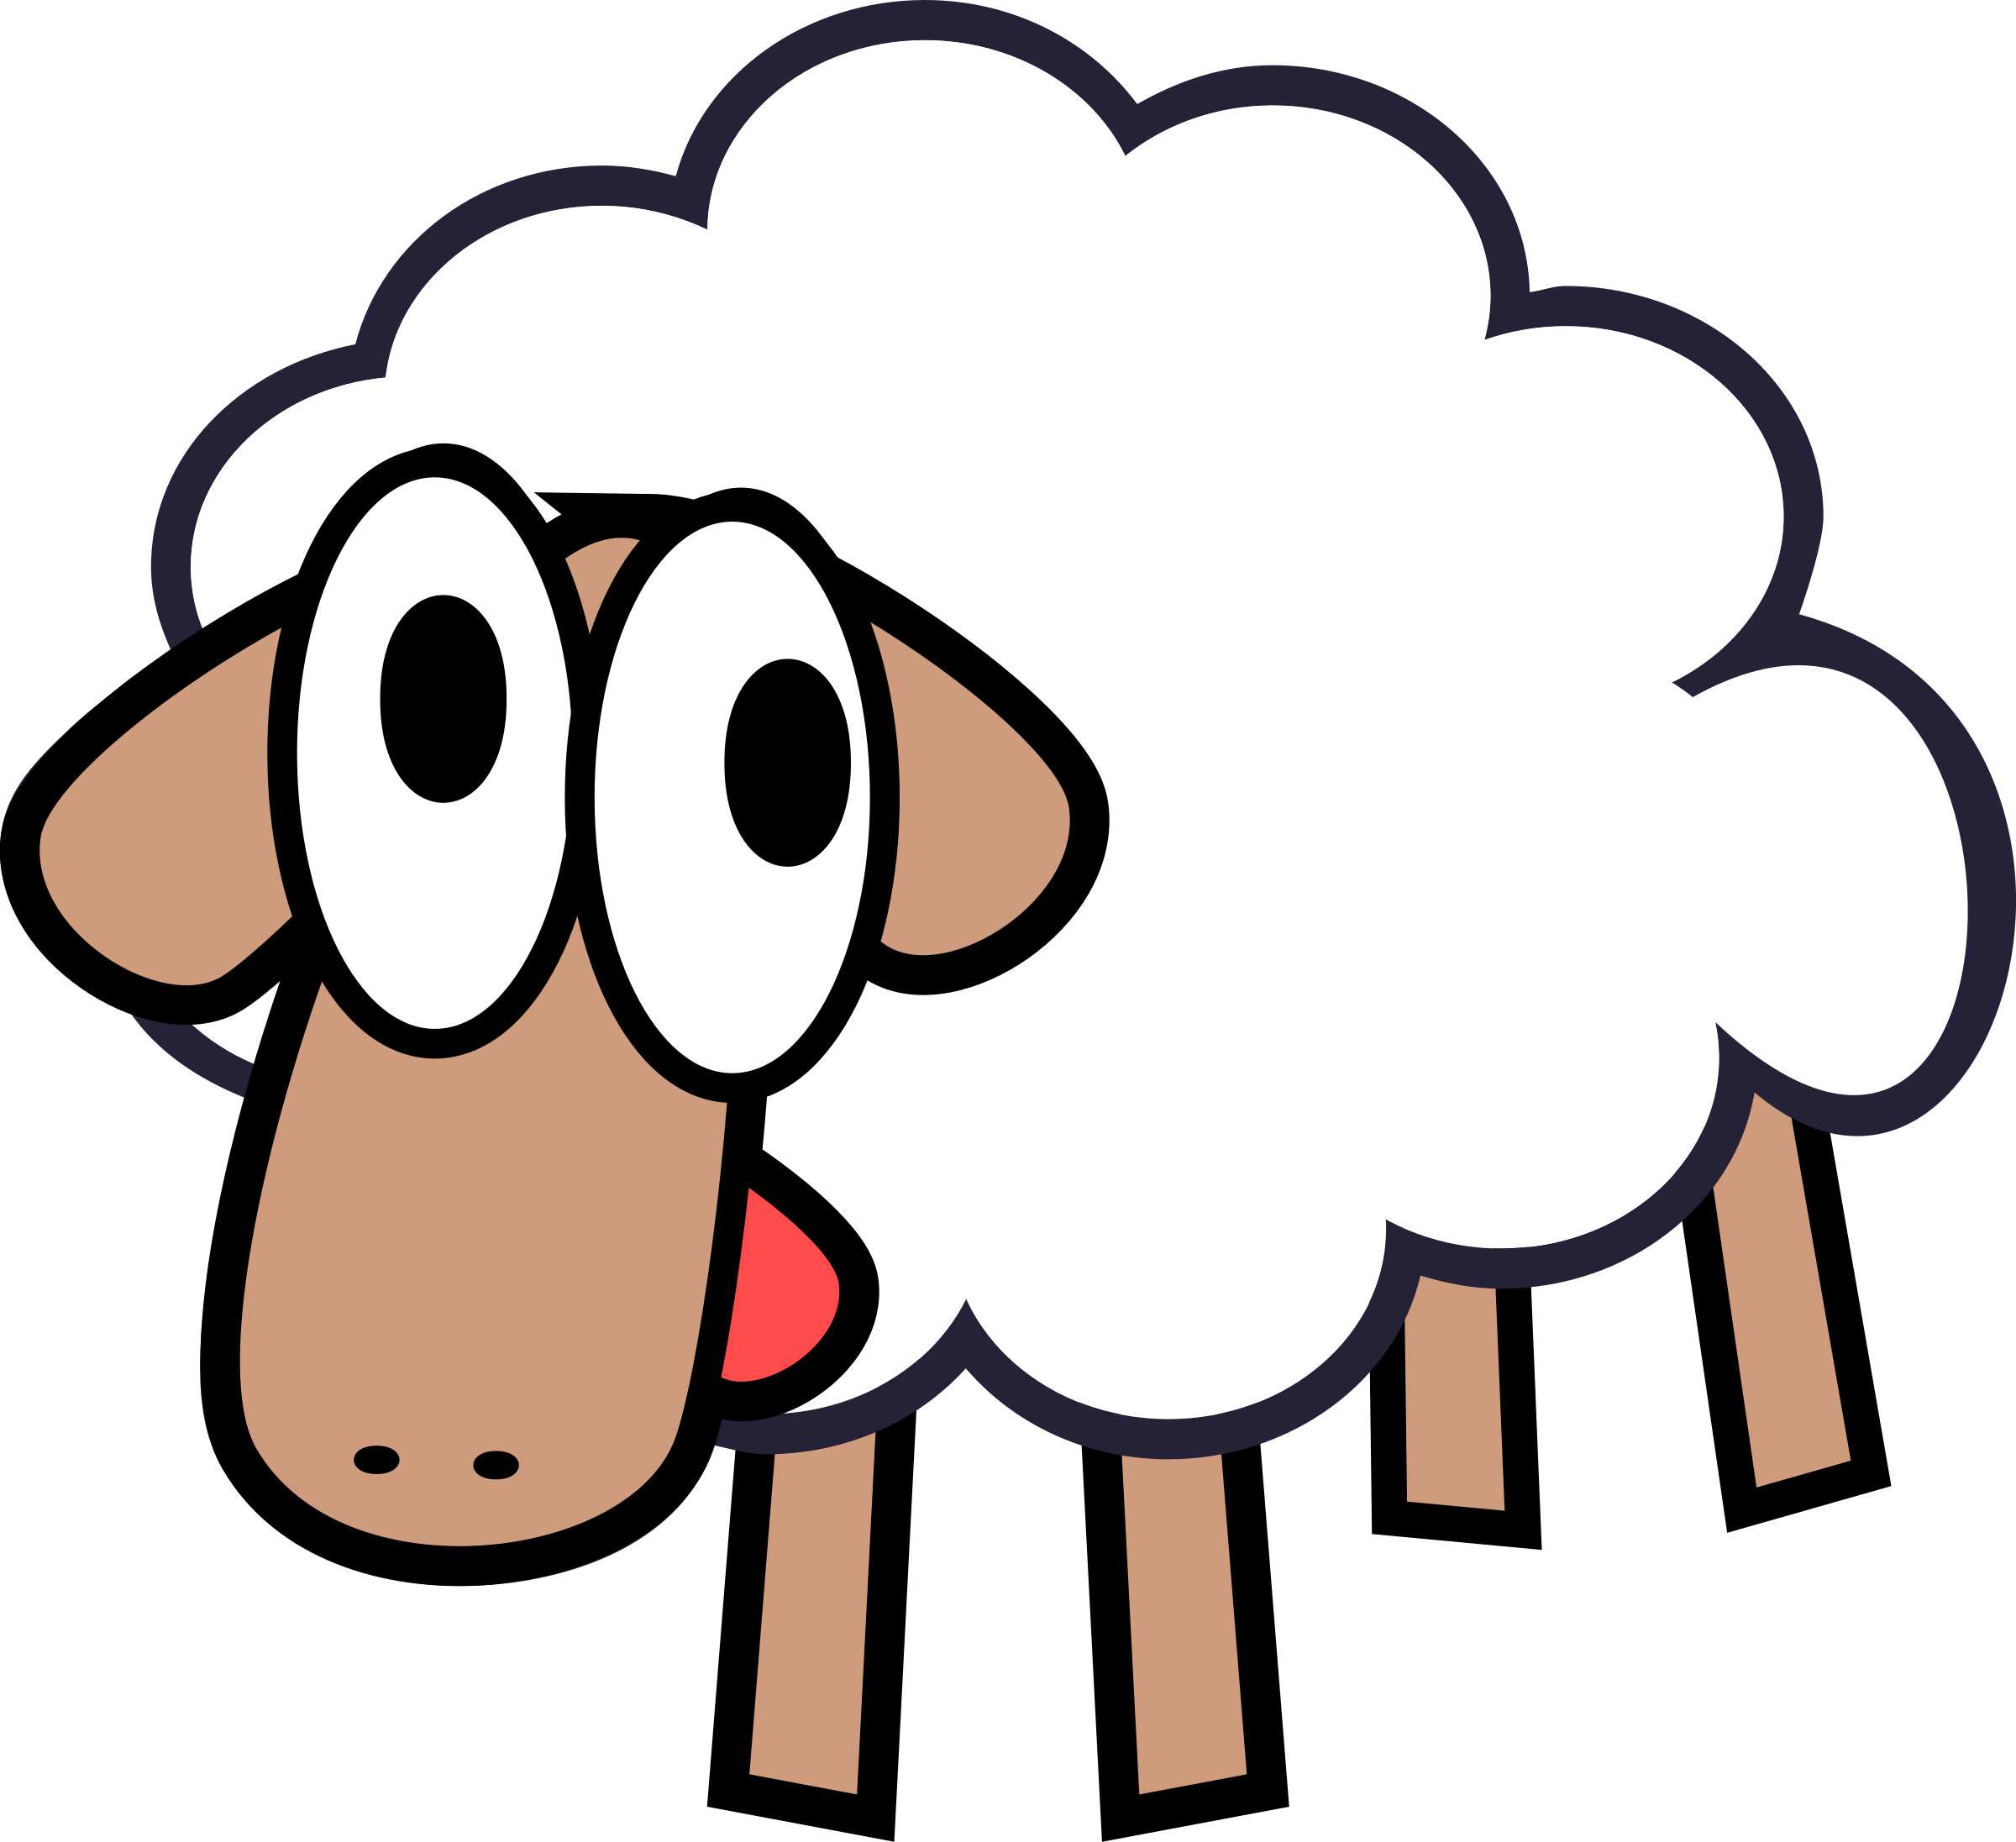 Gate clipart sheep. White stupid cute cartoon